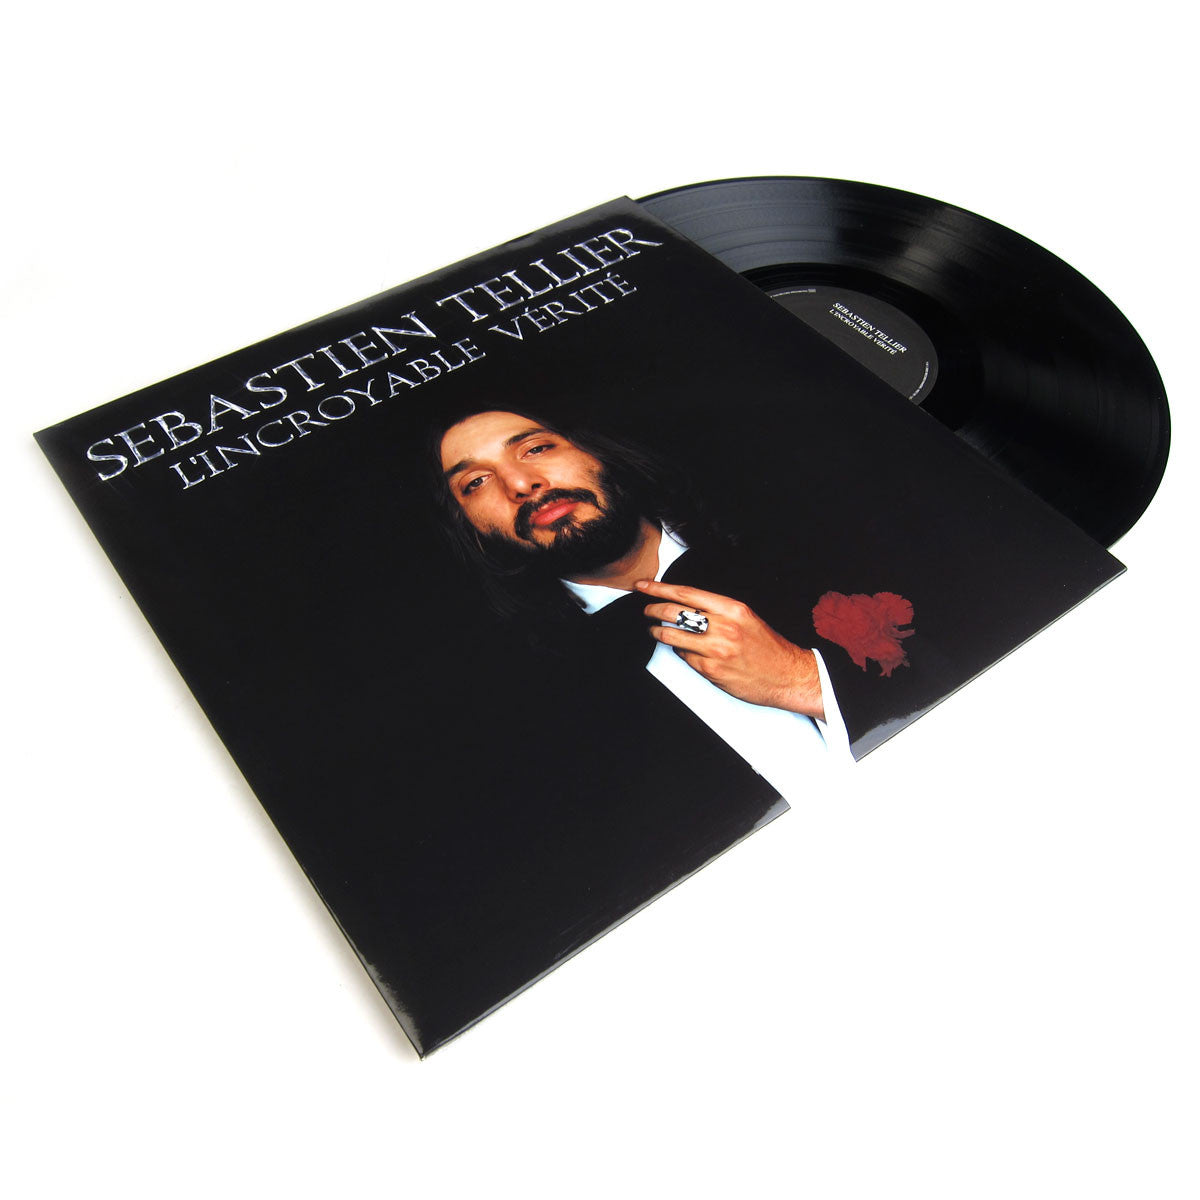 Sebastien Tellier: L'incroyable Verite (180g, Free MP3) Vinyl LP (Record Store Day 2014)